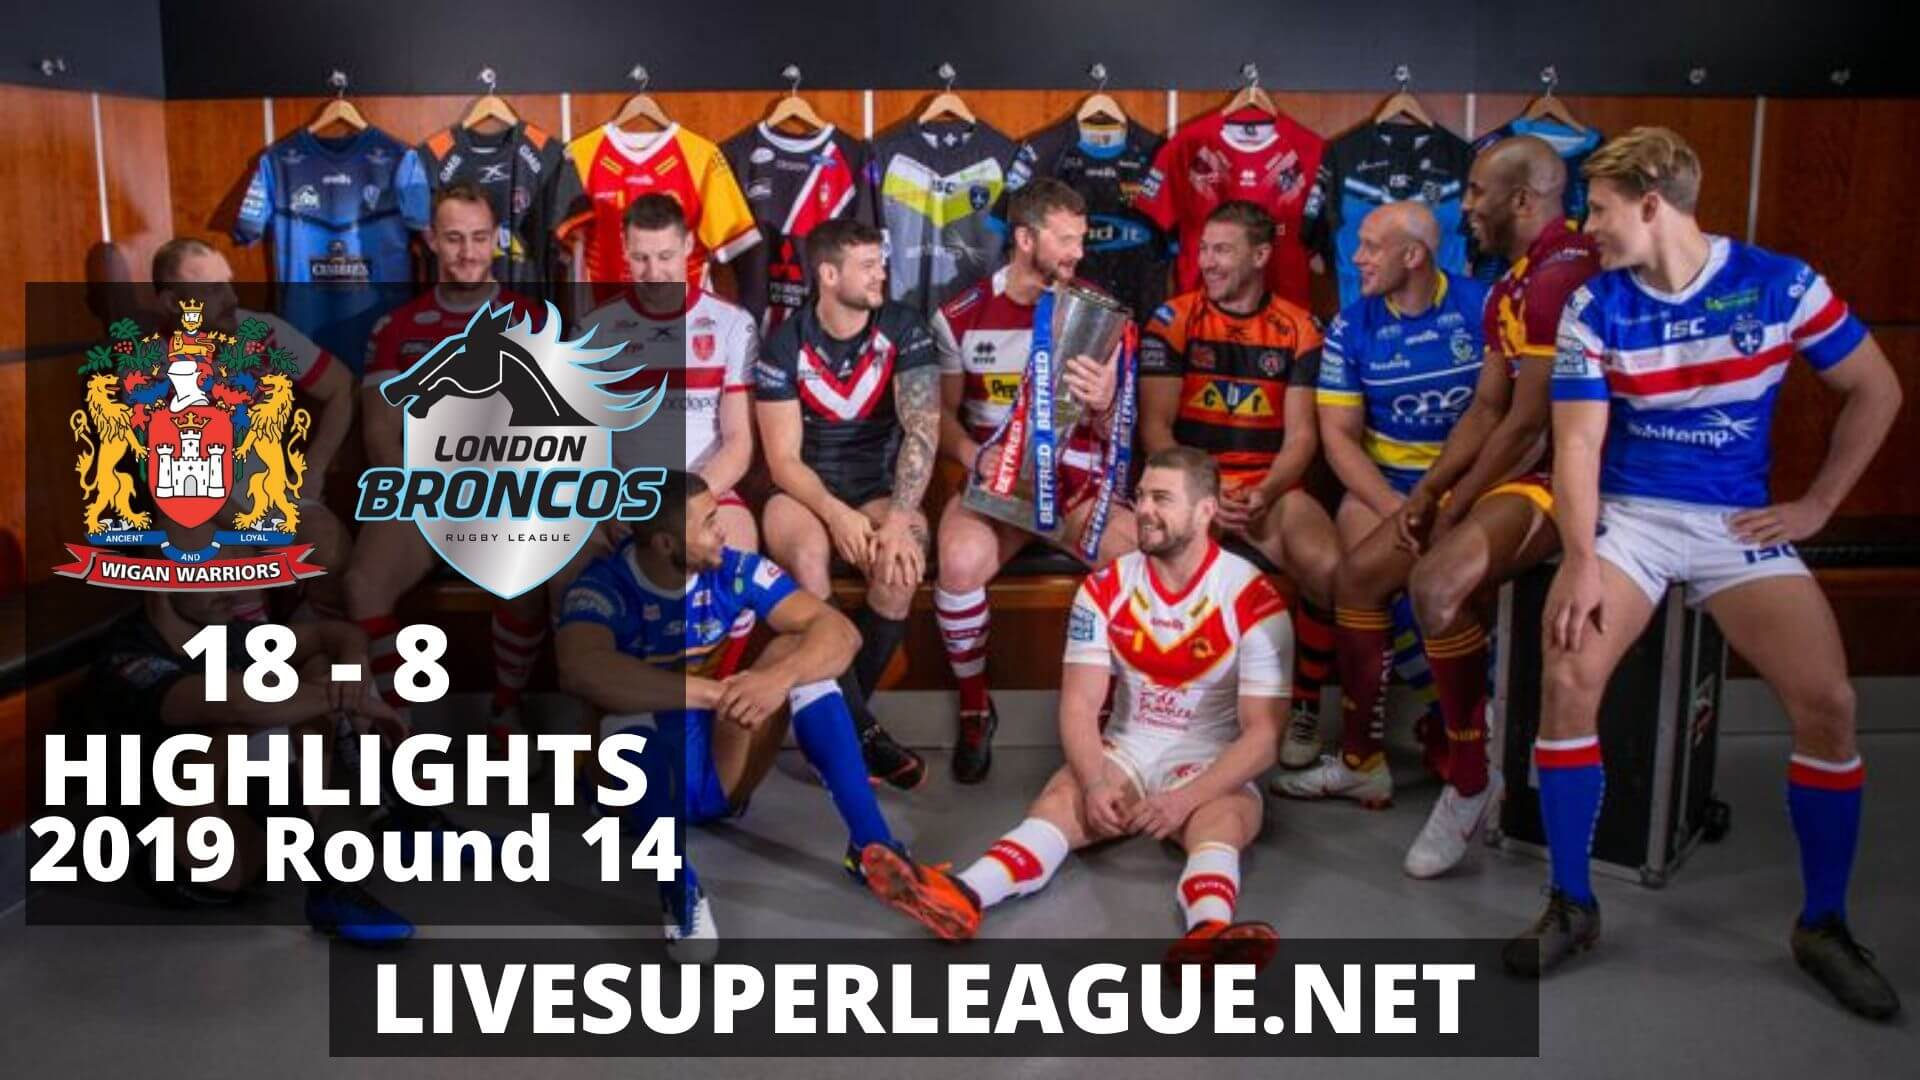 Wigan Warriors Vs London Broncos Highlights 2019 Round 14